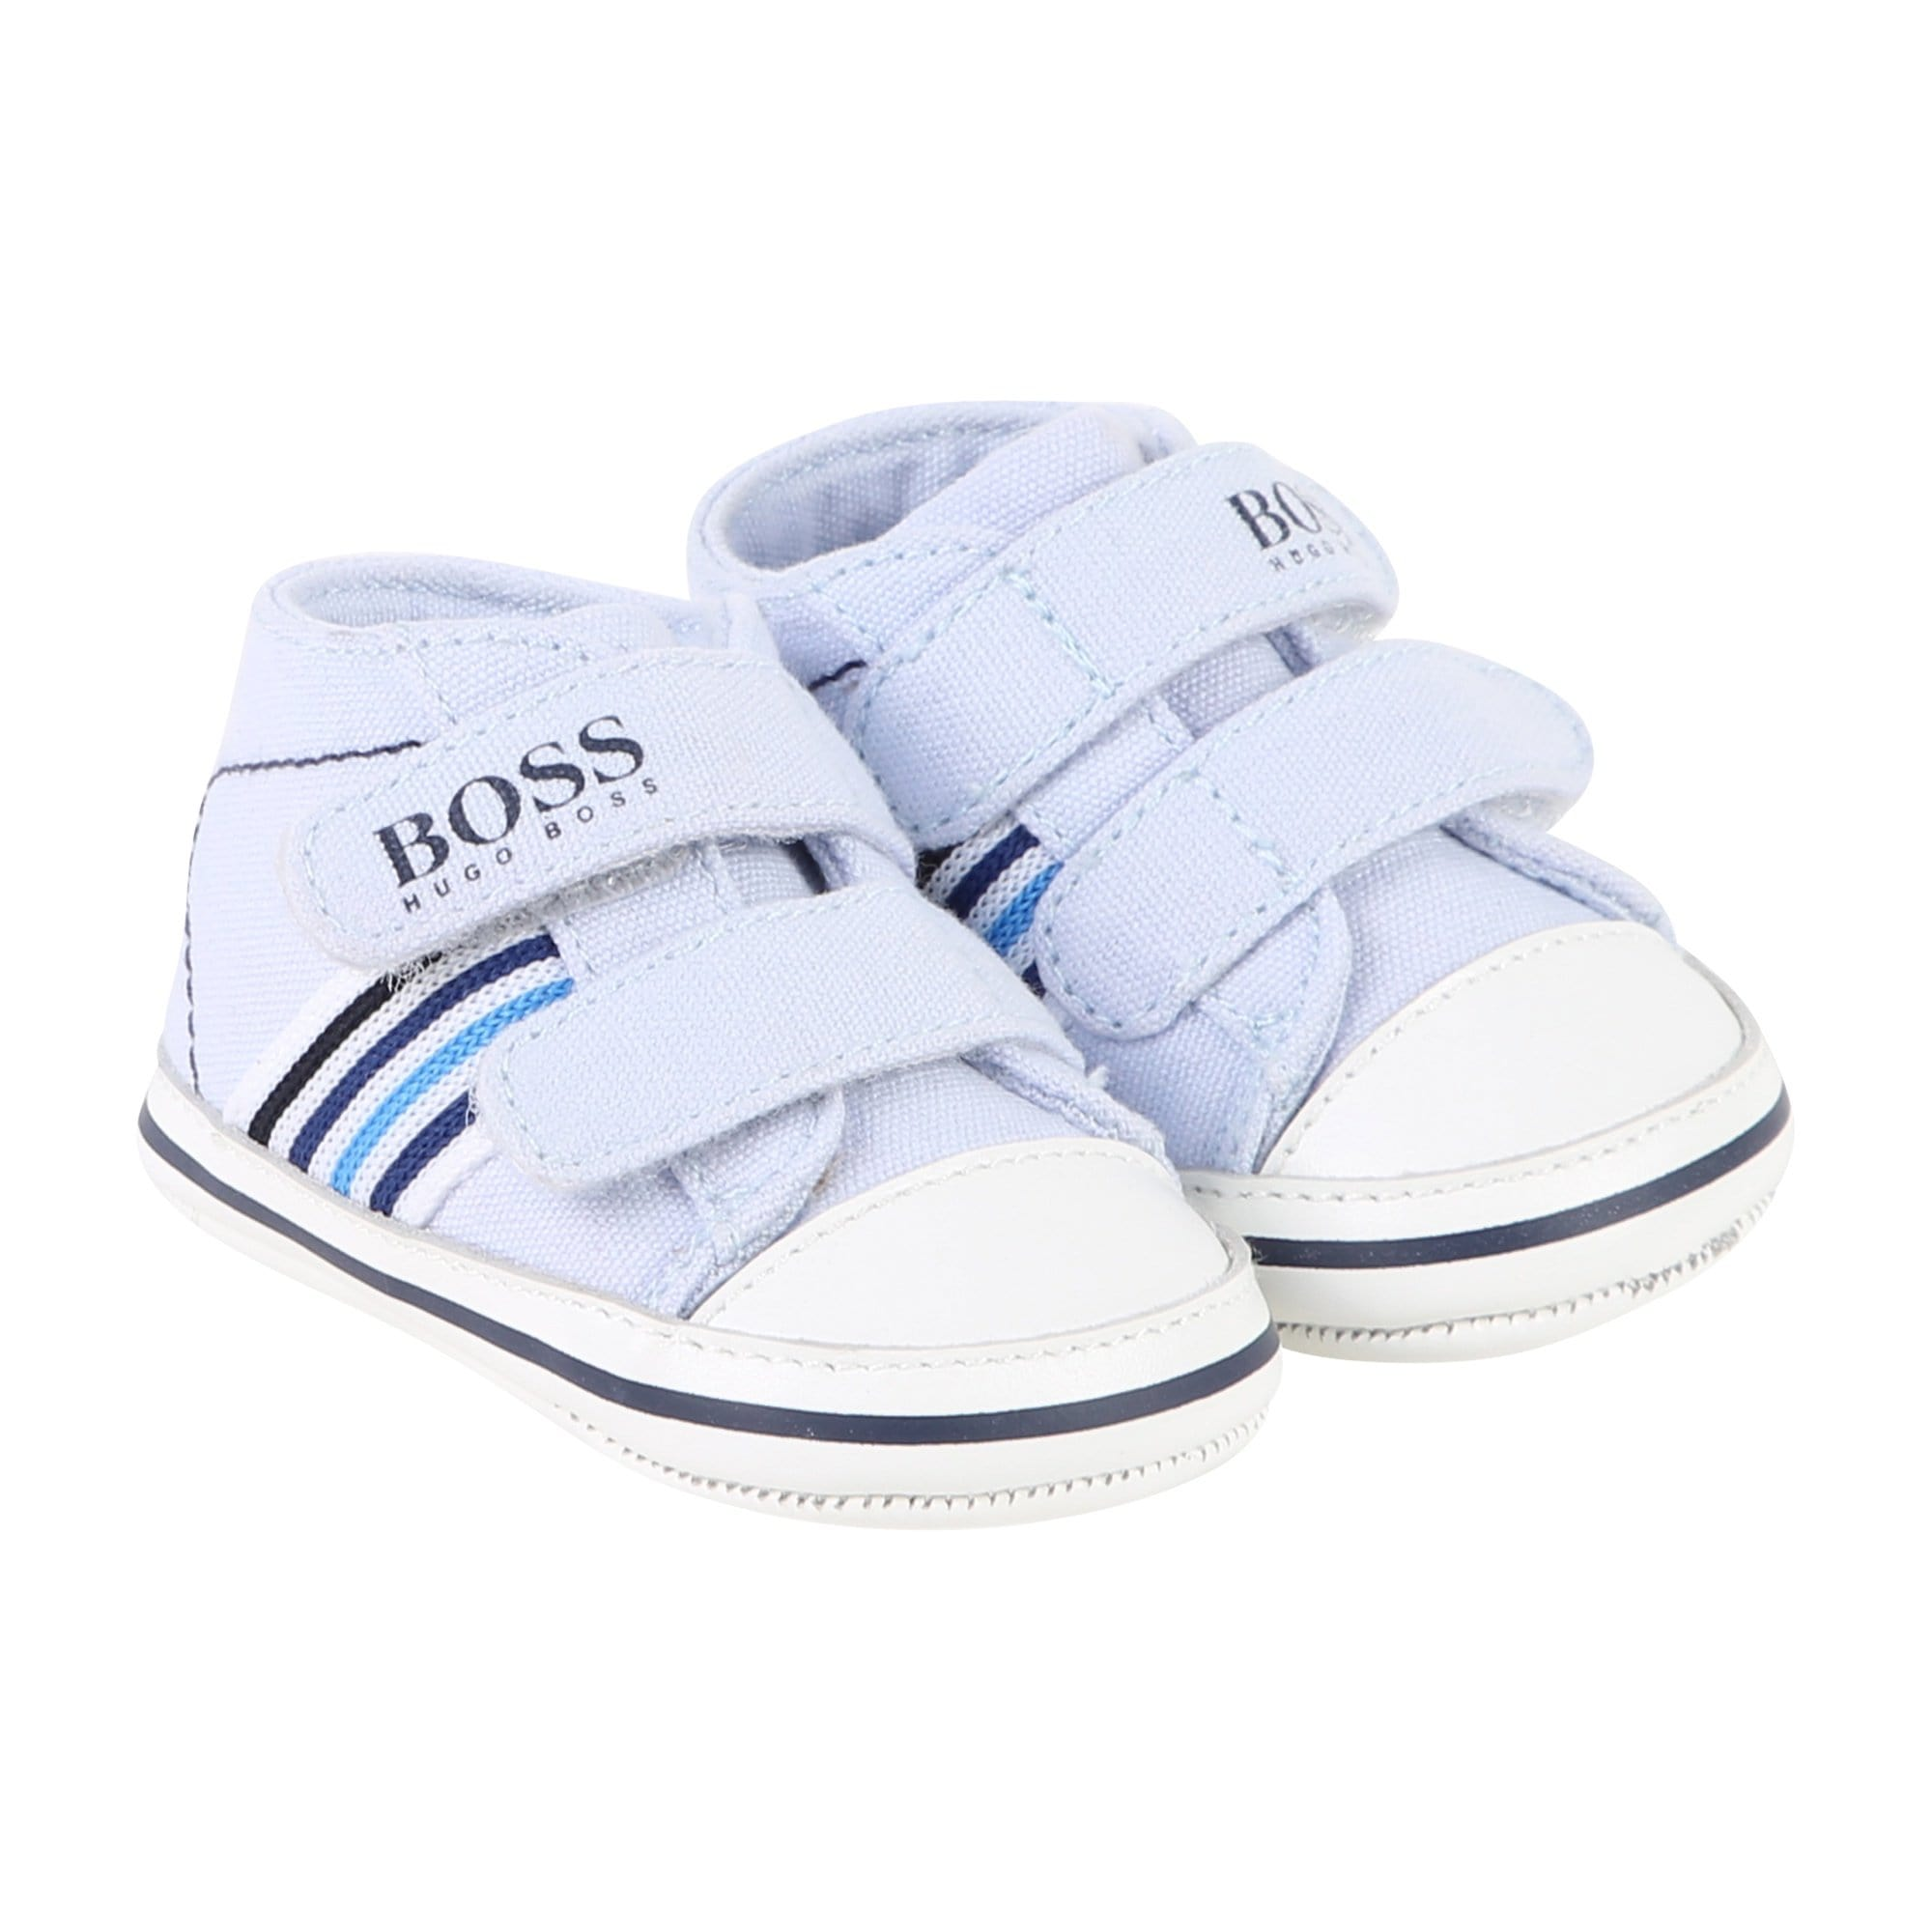 Hugo Boss Baby High Tops Light Blue J99058/771